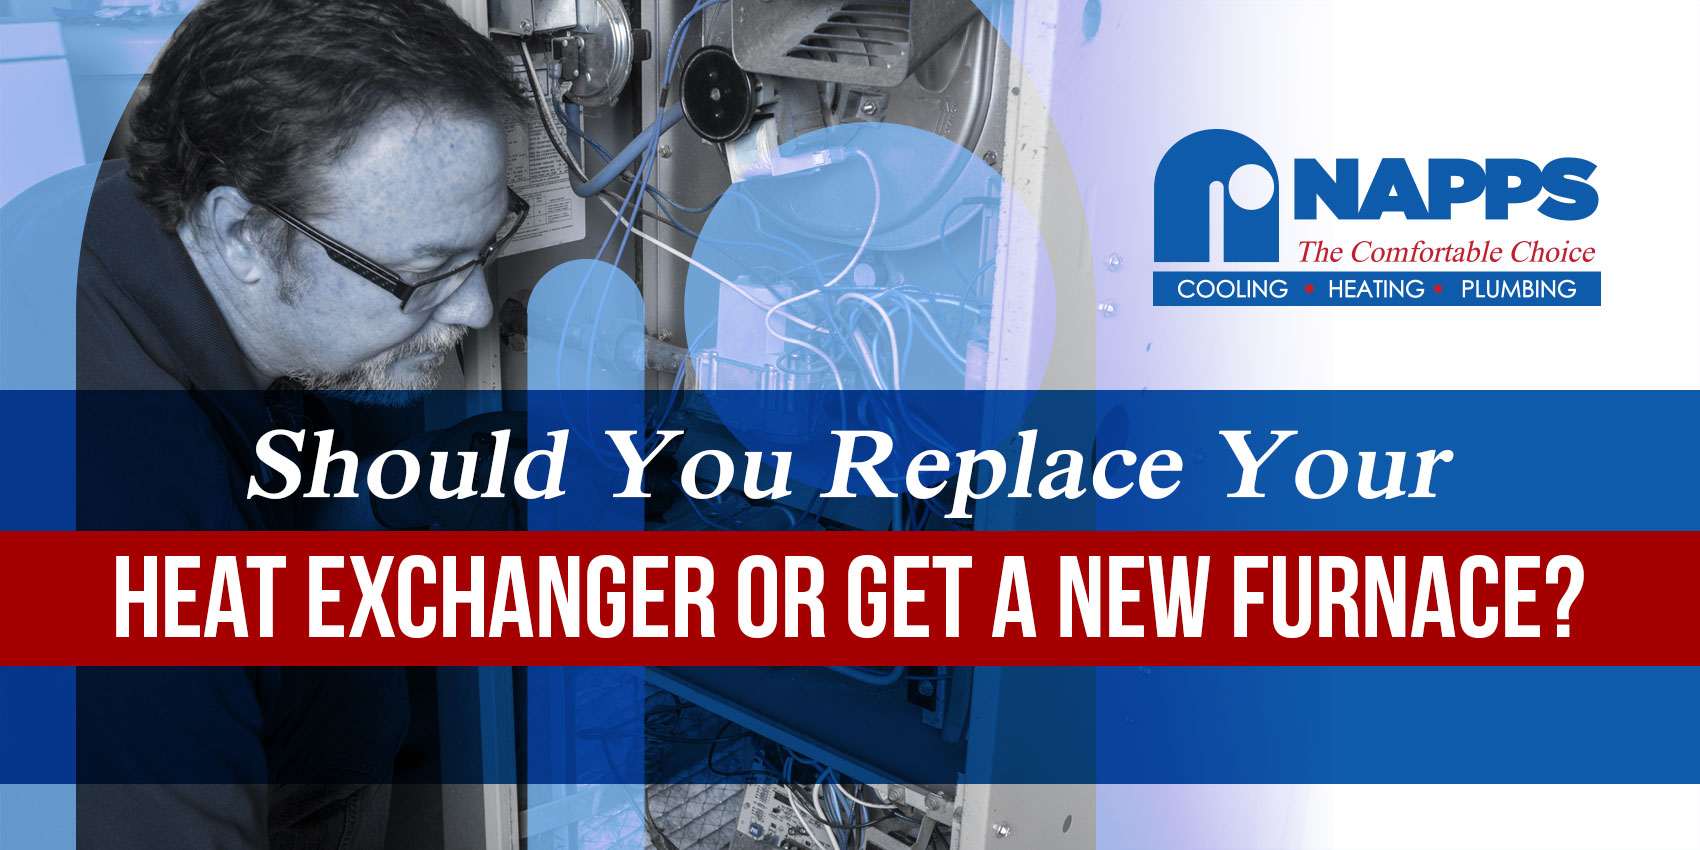 Should You Replace Your Heat Exchanger or Get a New Furnace?